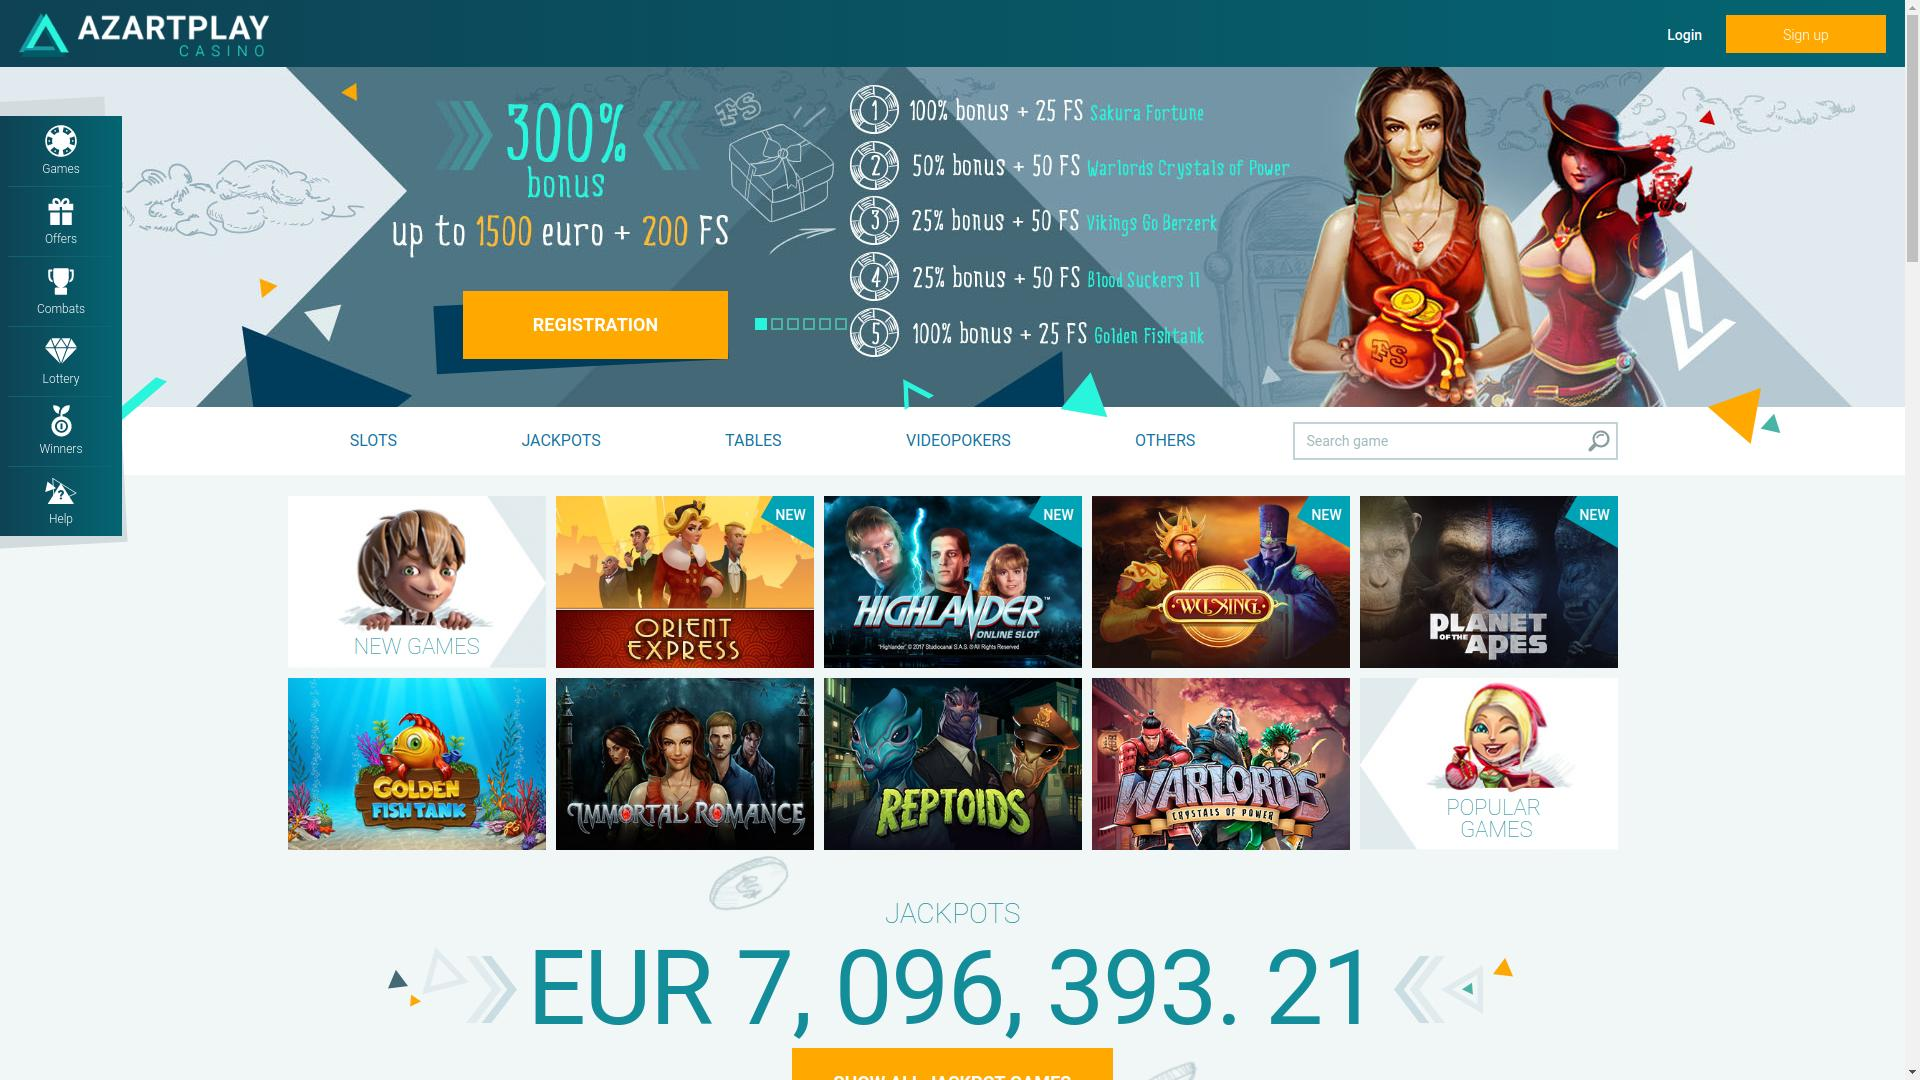 azartplay casino регистрация